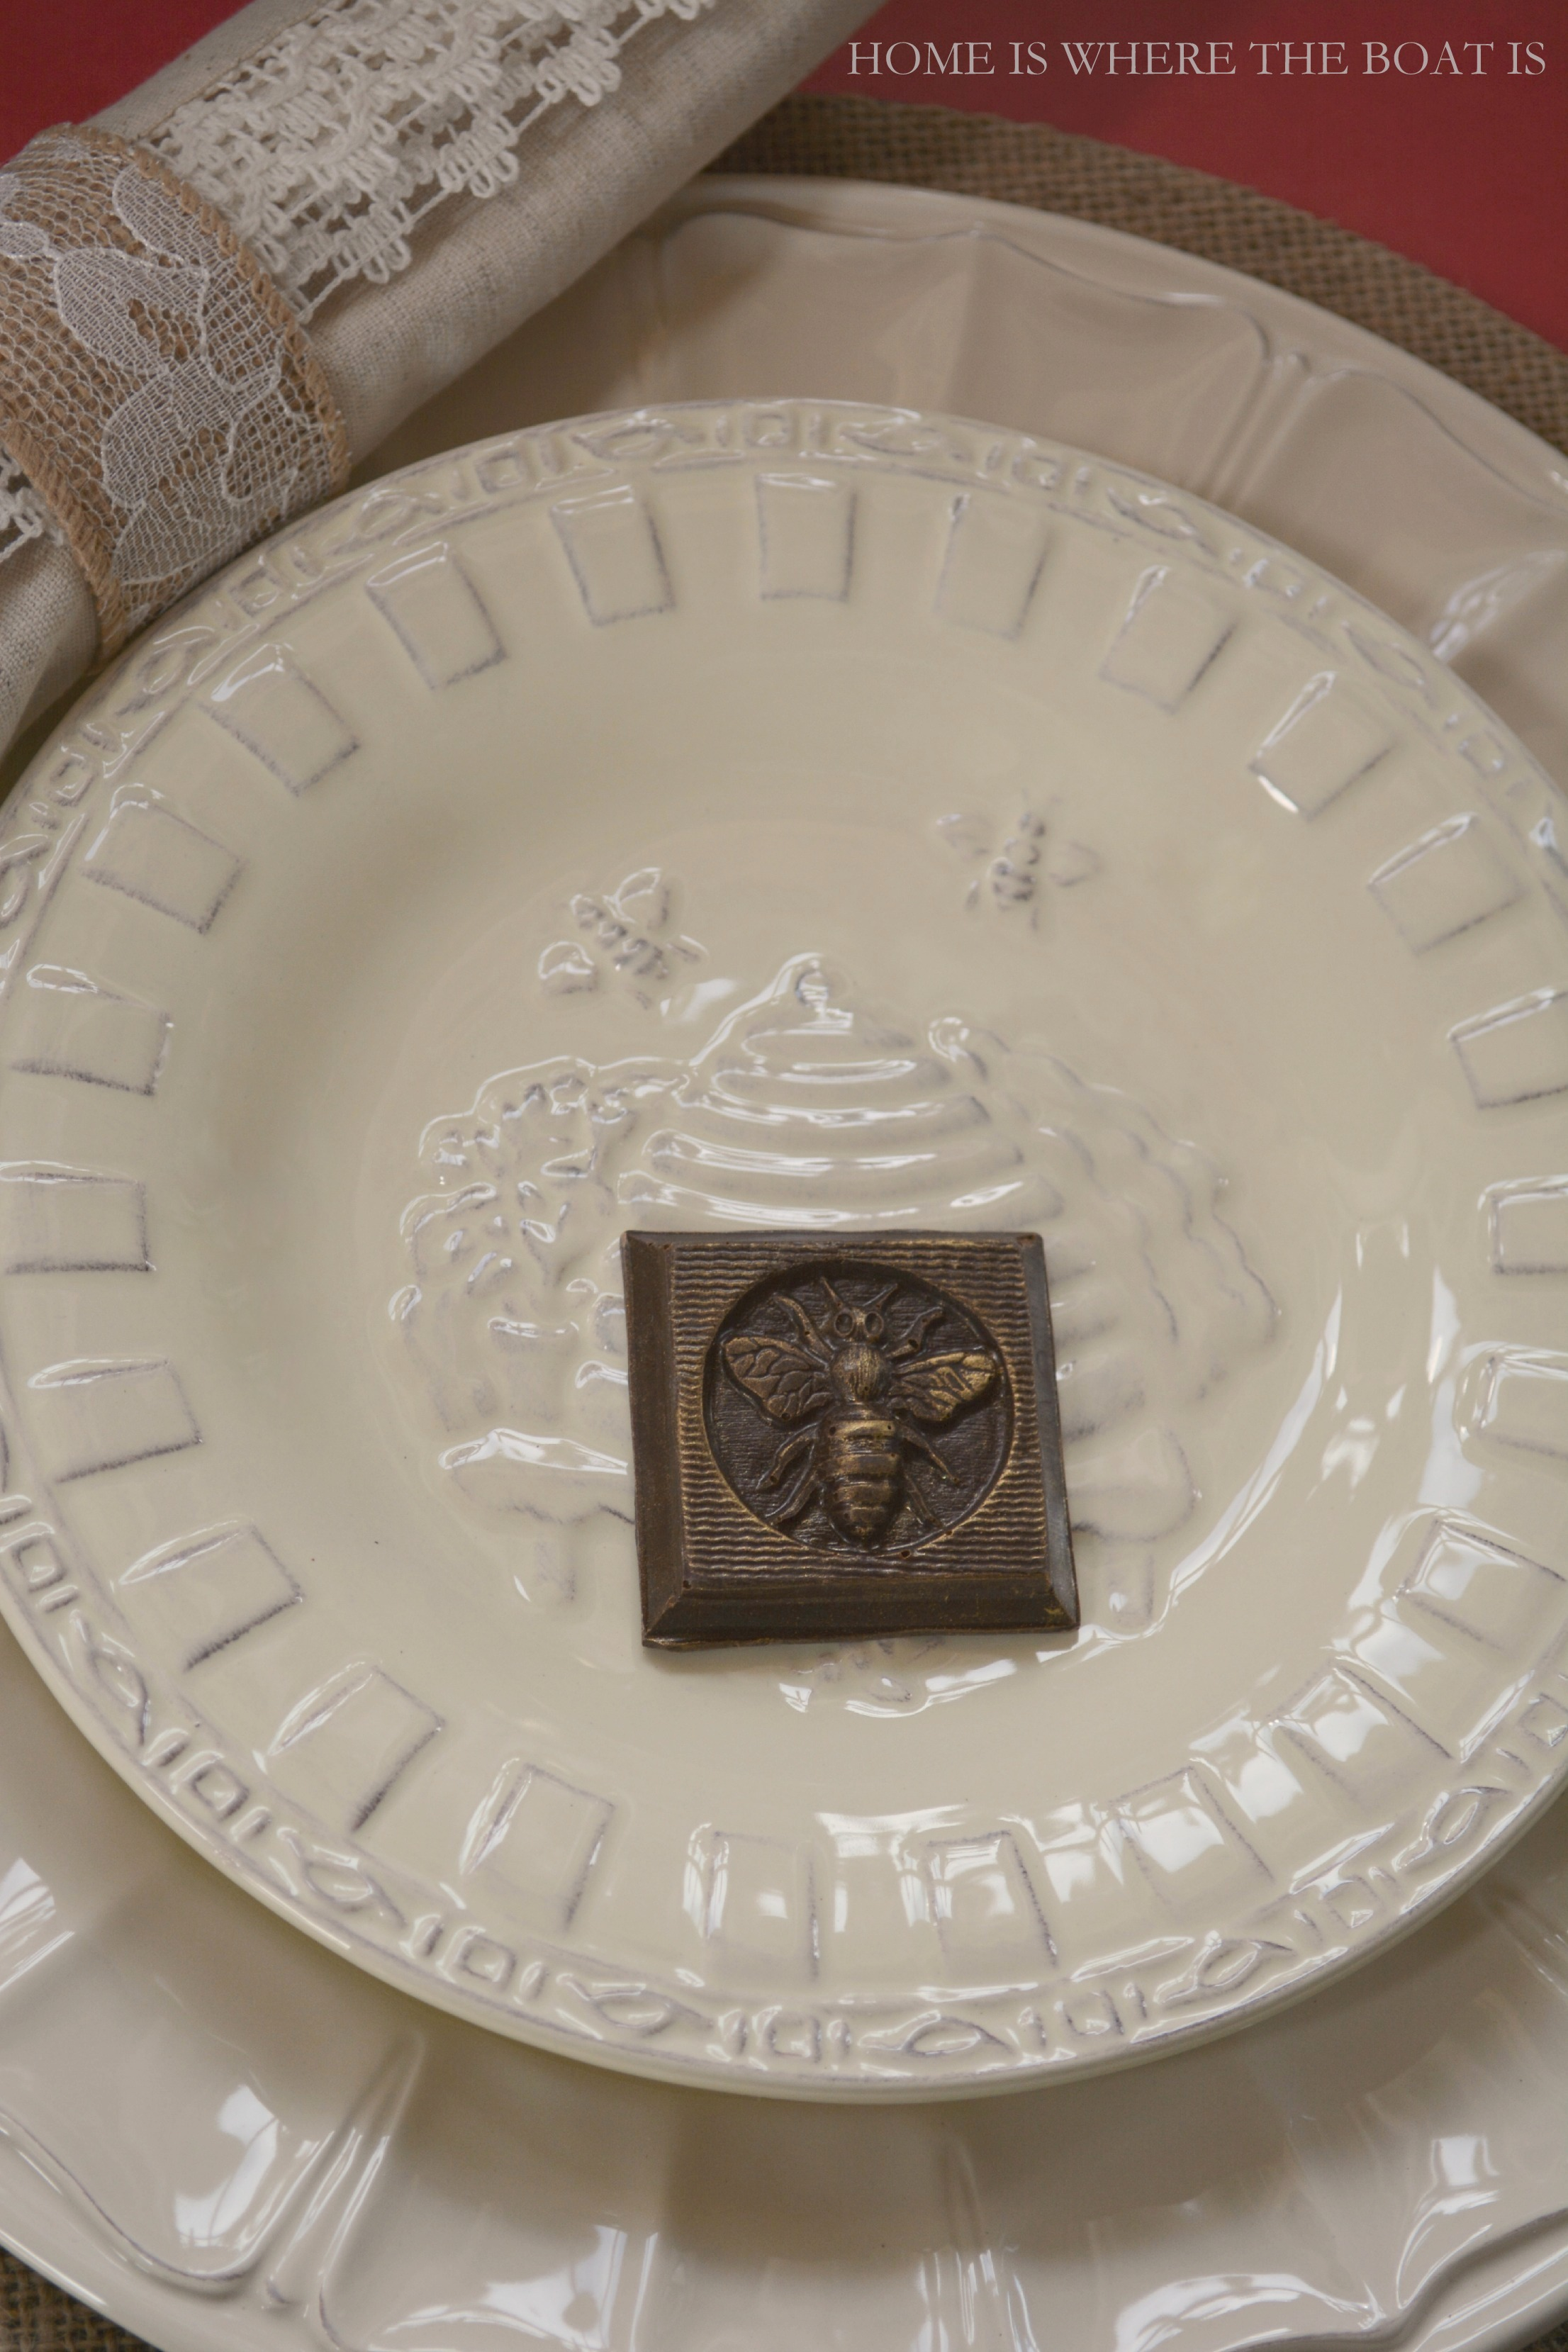 Savannah Honey Chocolate Truffles dark chocolate with Savannah Bee Company sourwood honey liquid center finished with a 24k gold dust for a *Bee* Mine ... & Bee* Mine Tabletop Fun for Valentine\u0027s Day \u2013 Home is Where the Boat Is